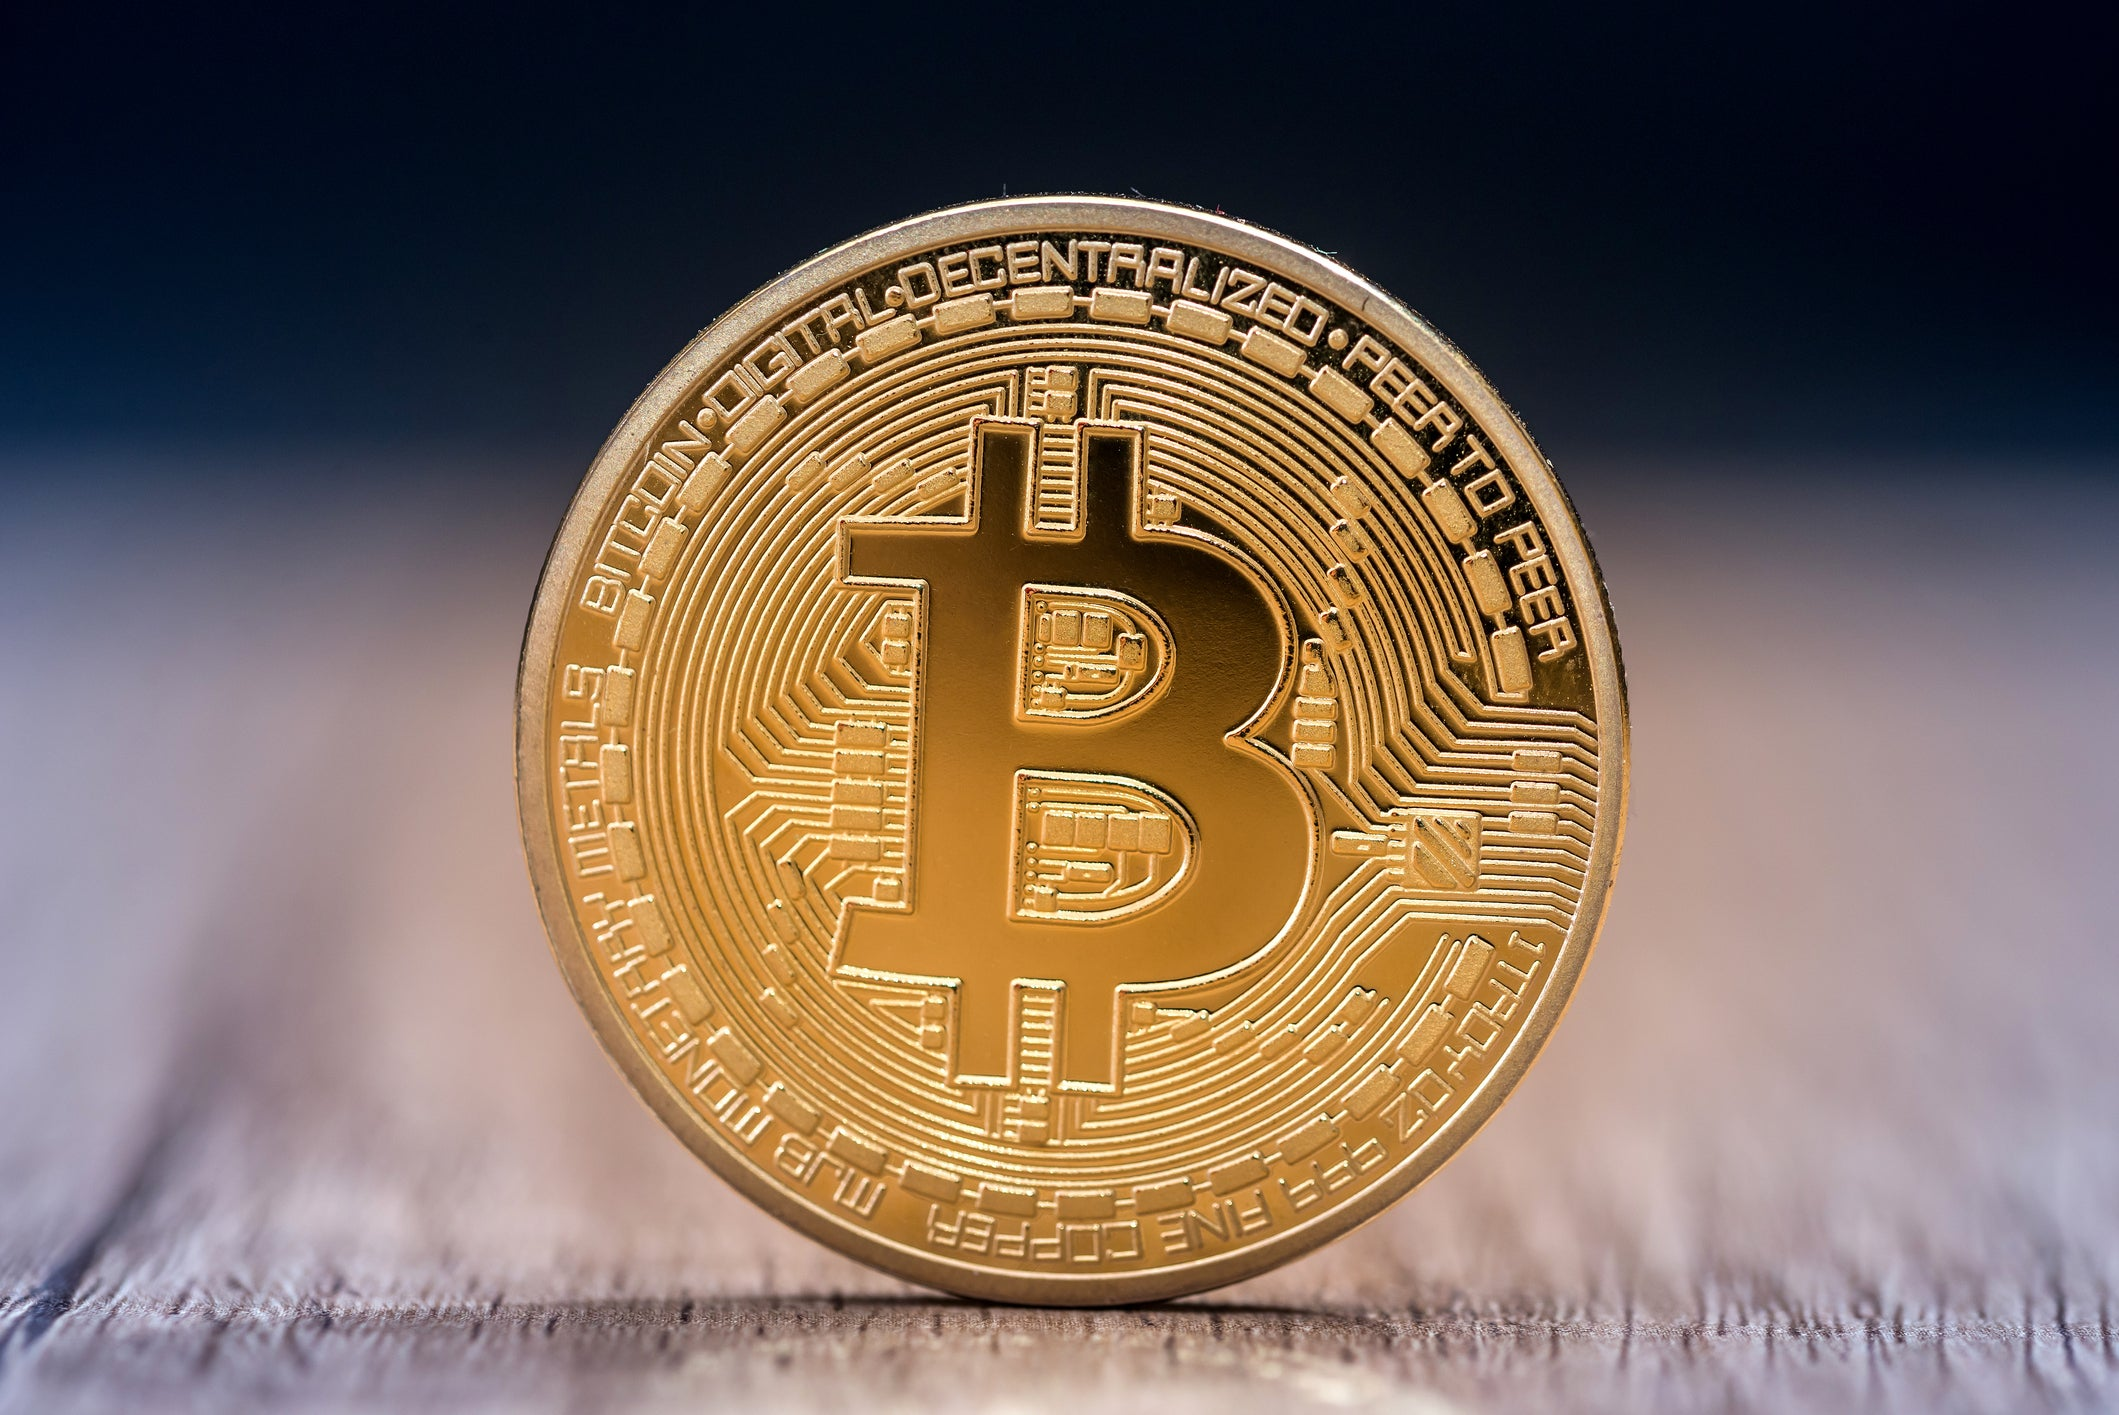 The Americans exchange their devalued dollars for Bitcoin